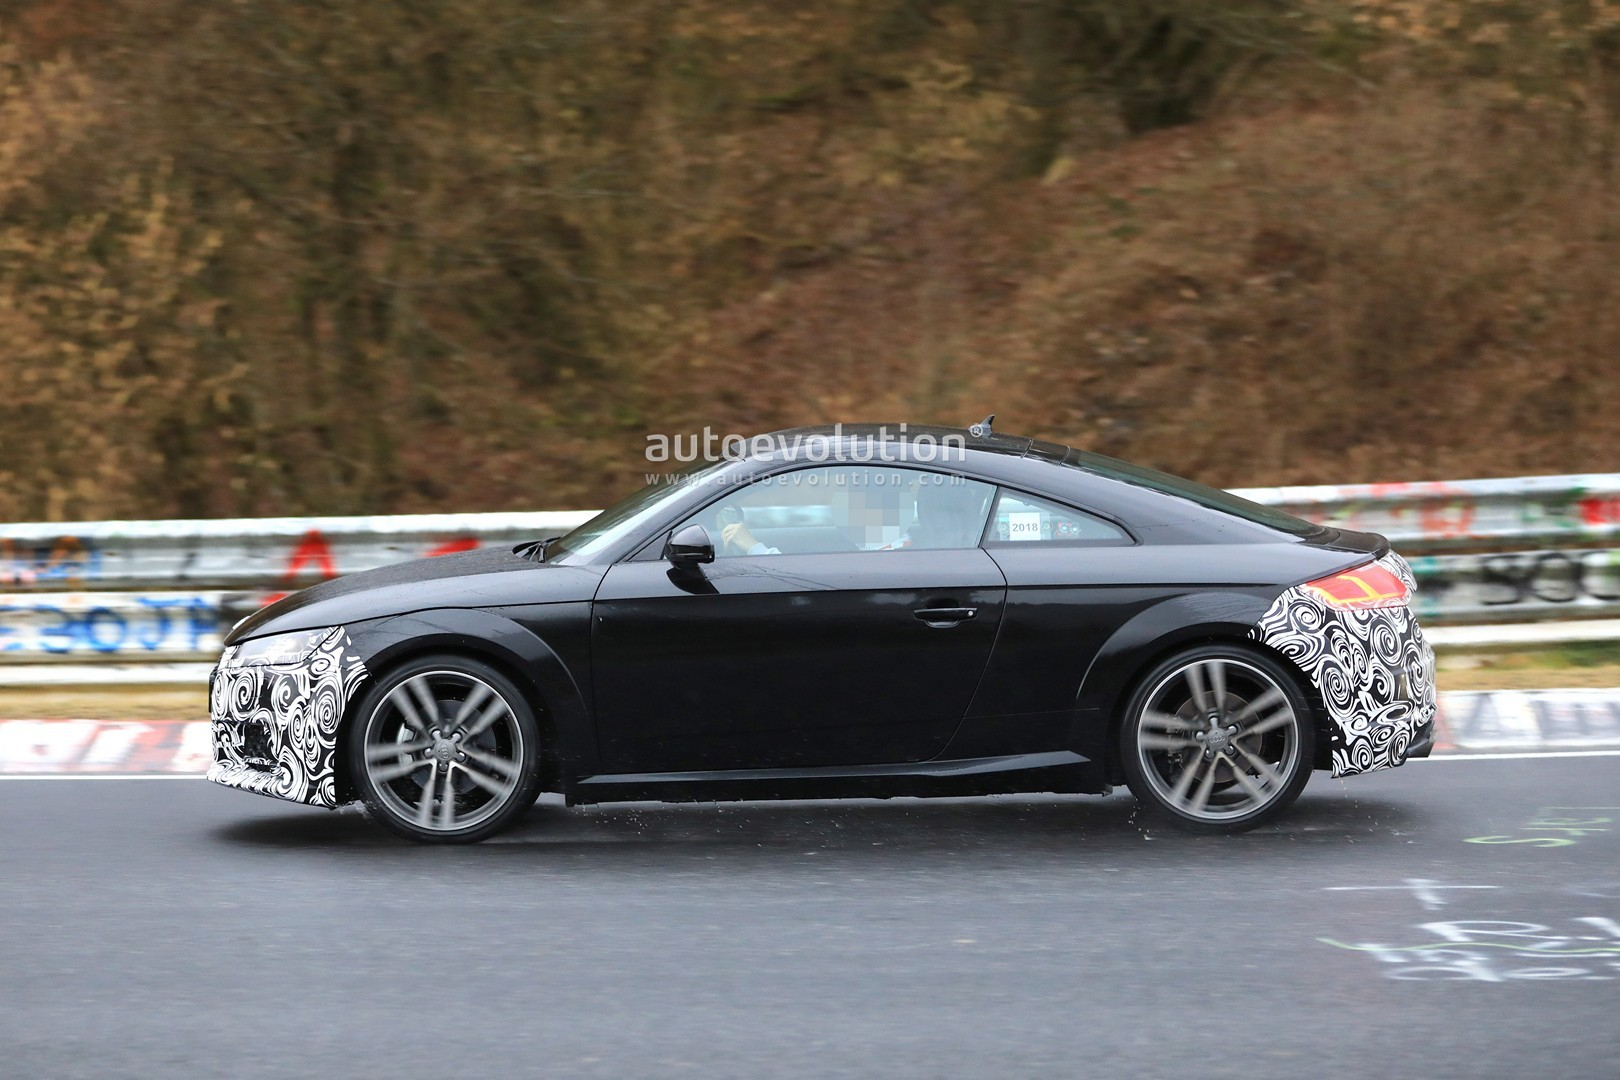 Spyshots: 2019 Audi TT Facelift Spotted Testing on the